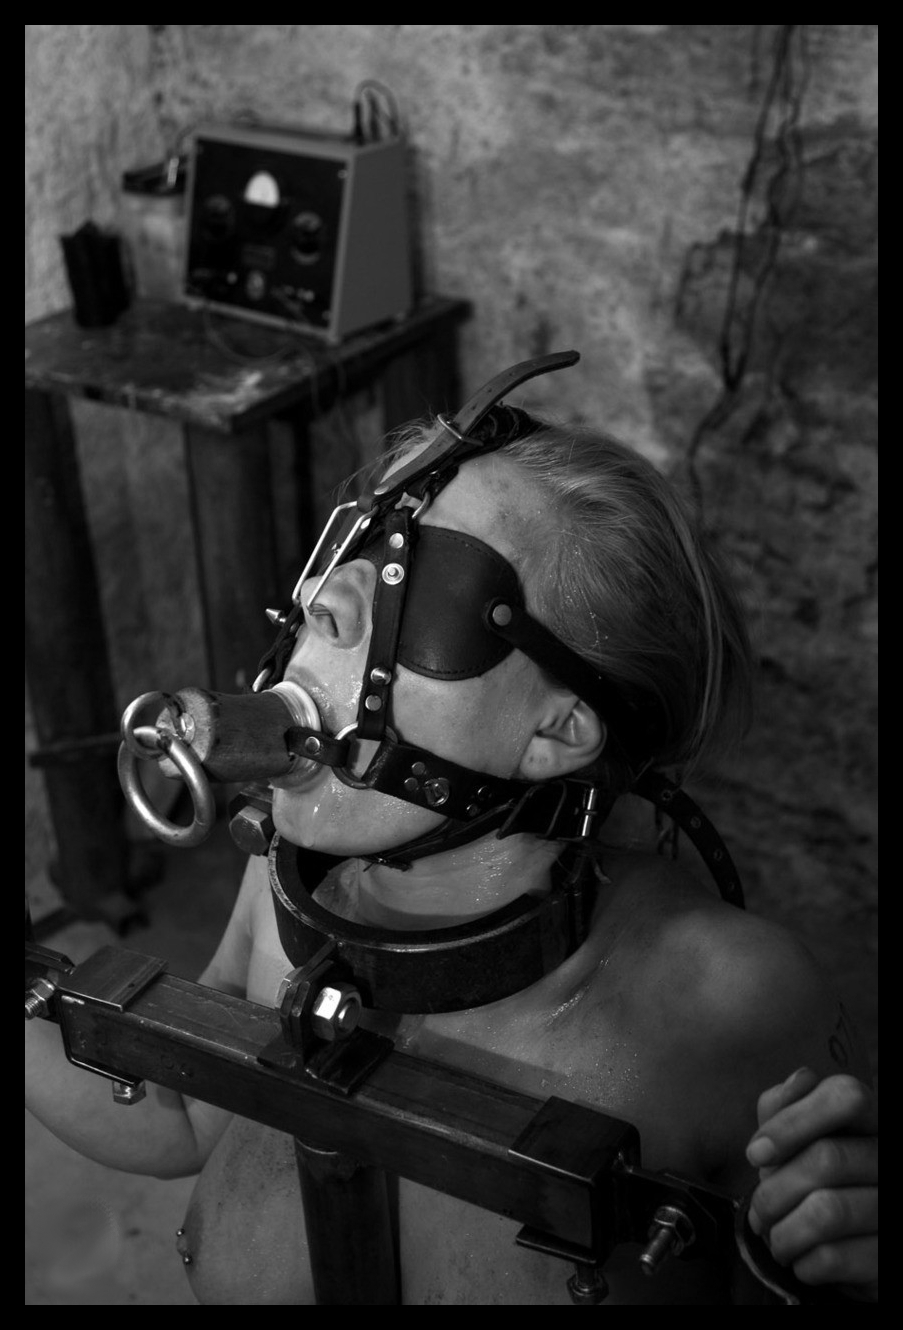 sm-bdsm-torture-tortured-steel-bondage-pain-punished-tortured-slaves-girls-0281.jpg